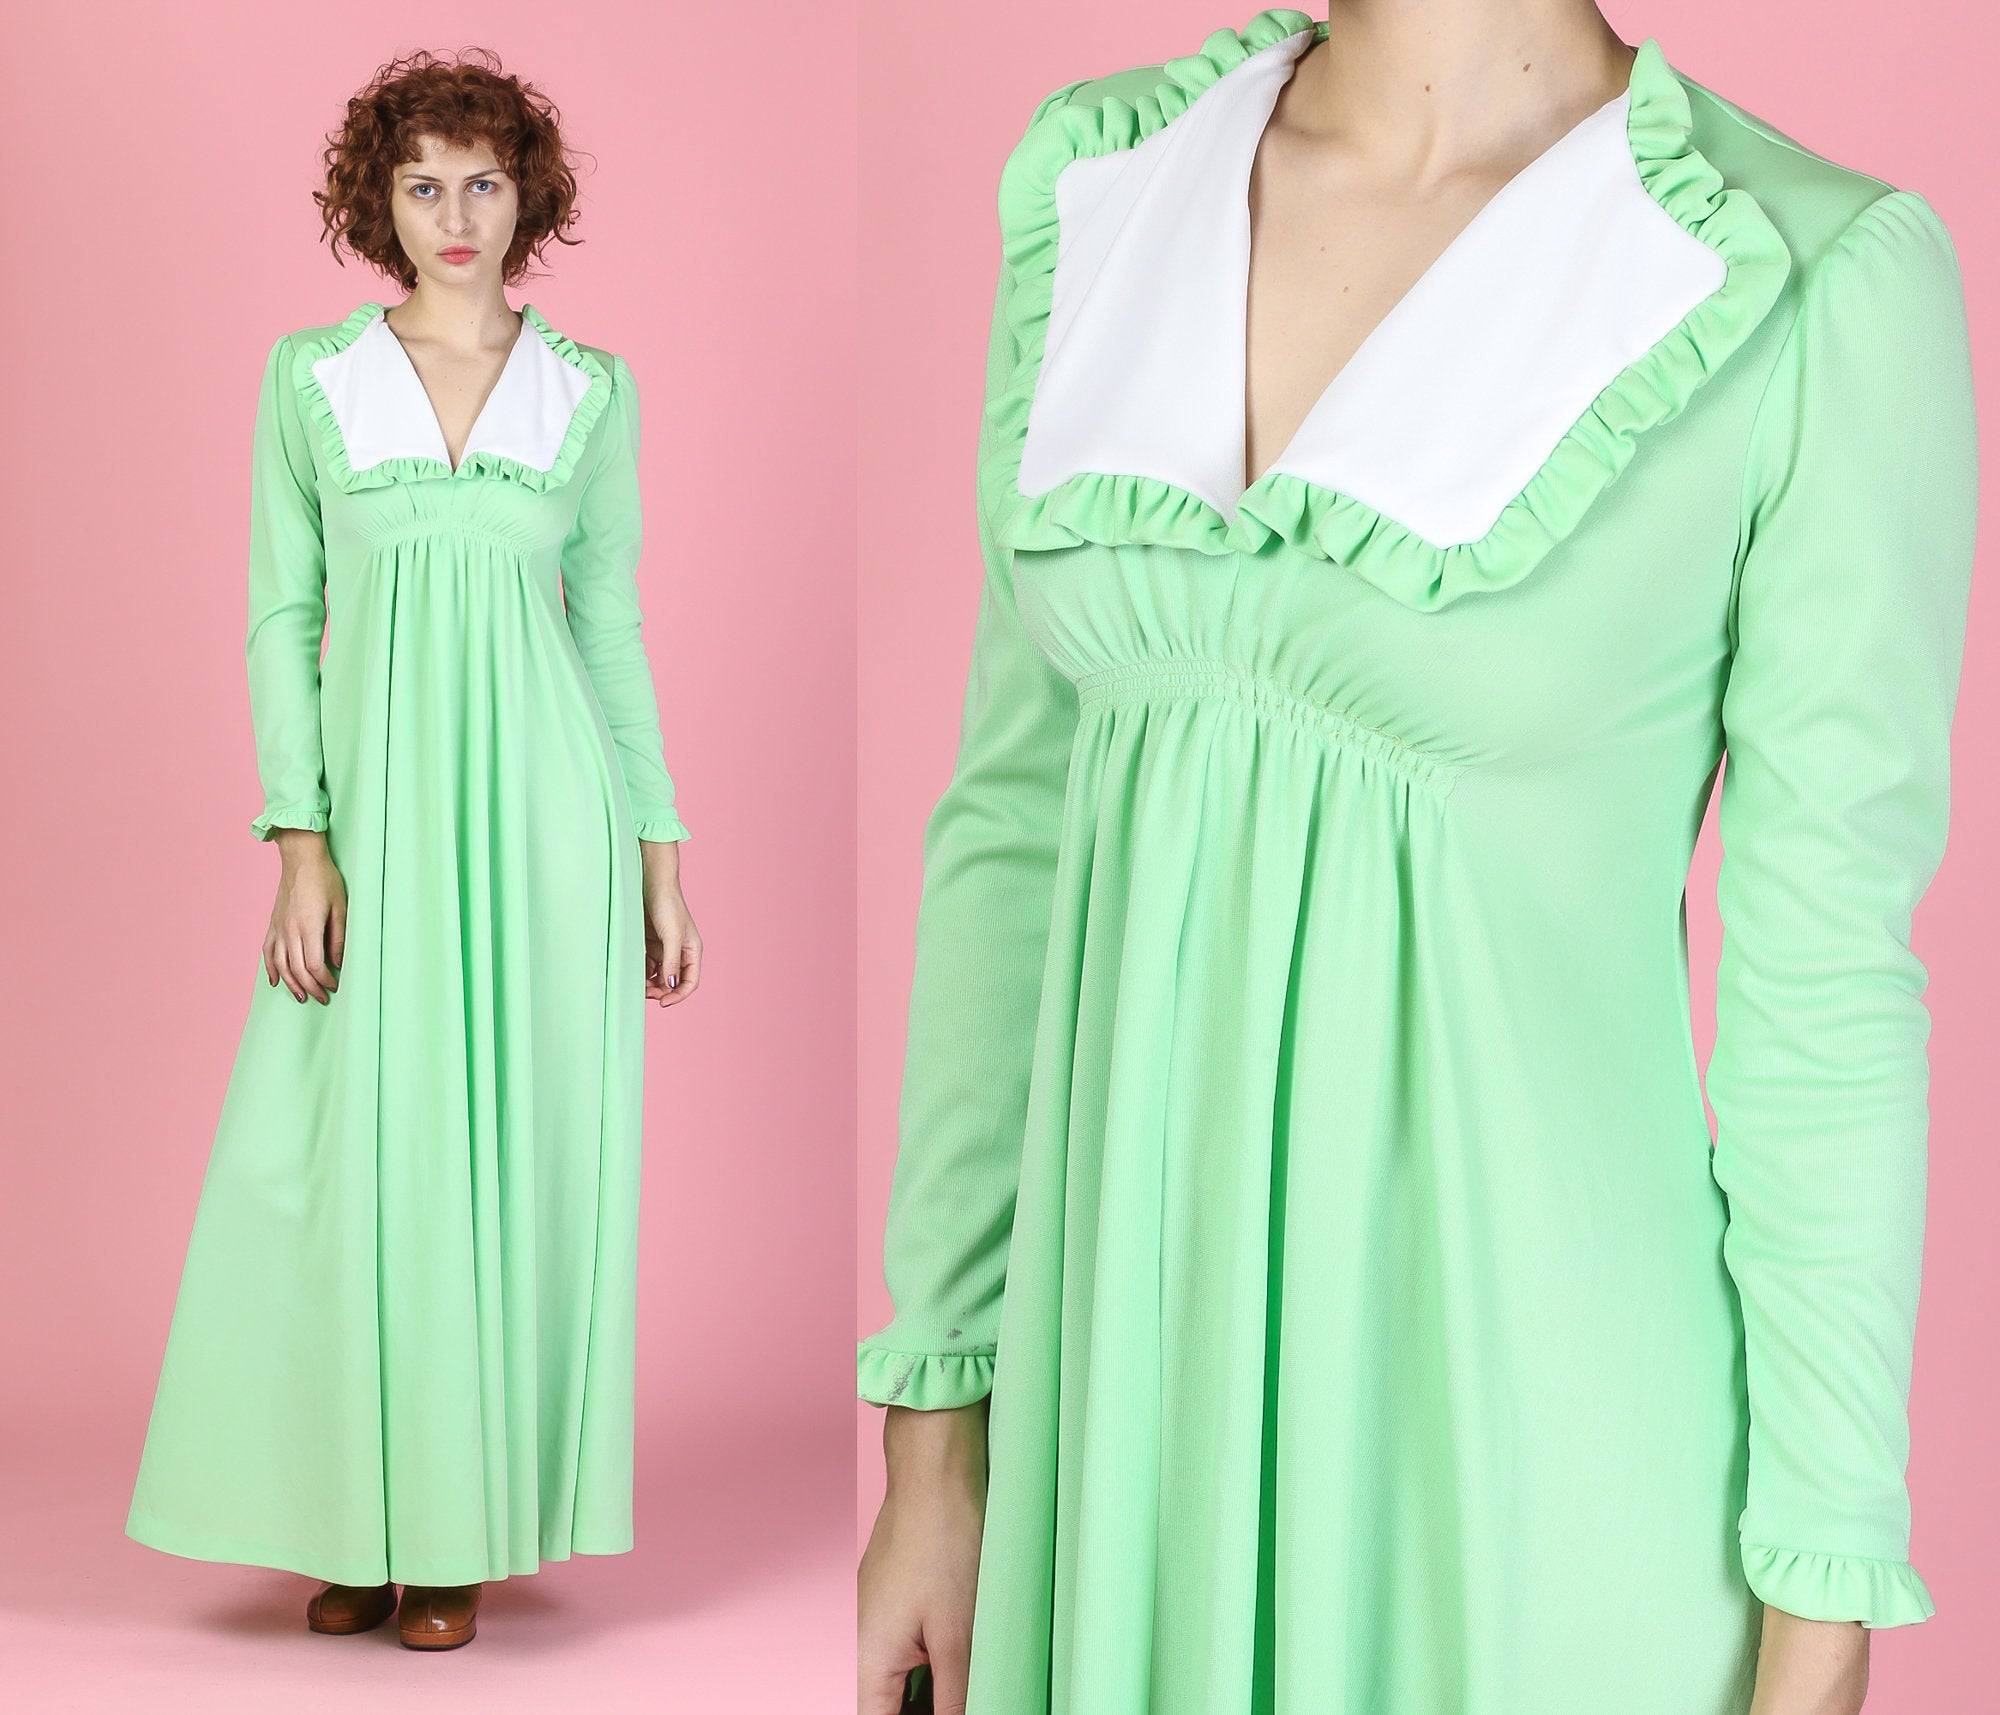 70s Mint Green Maxi Dress - Small to Medium